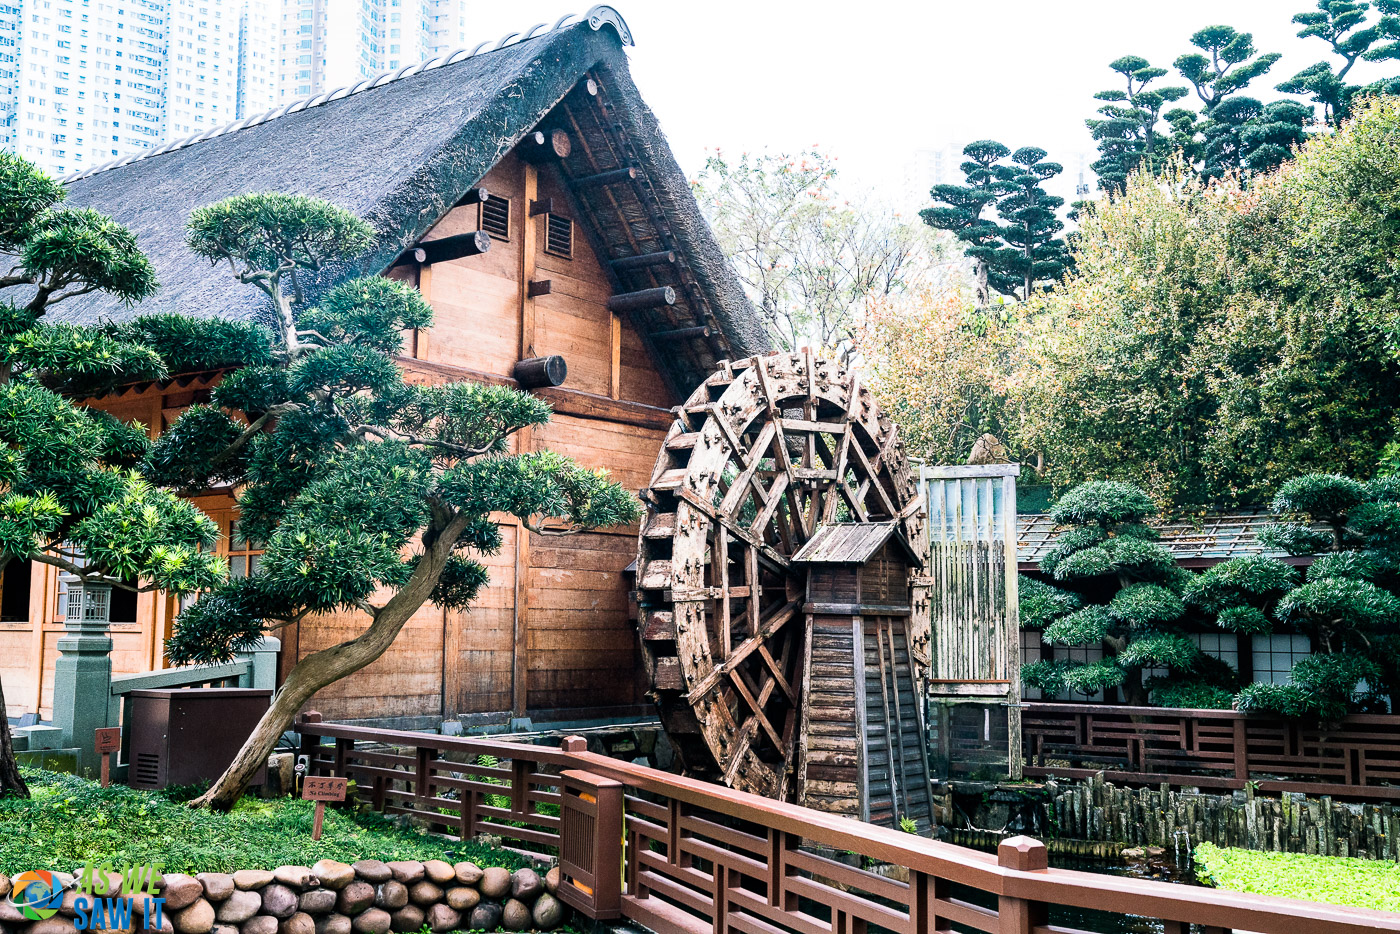 The Mill at Nan Lian Garden